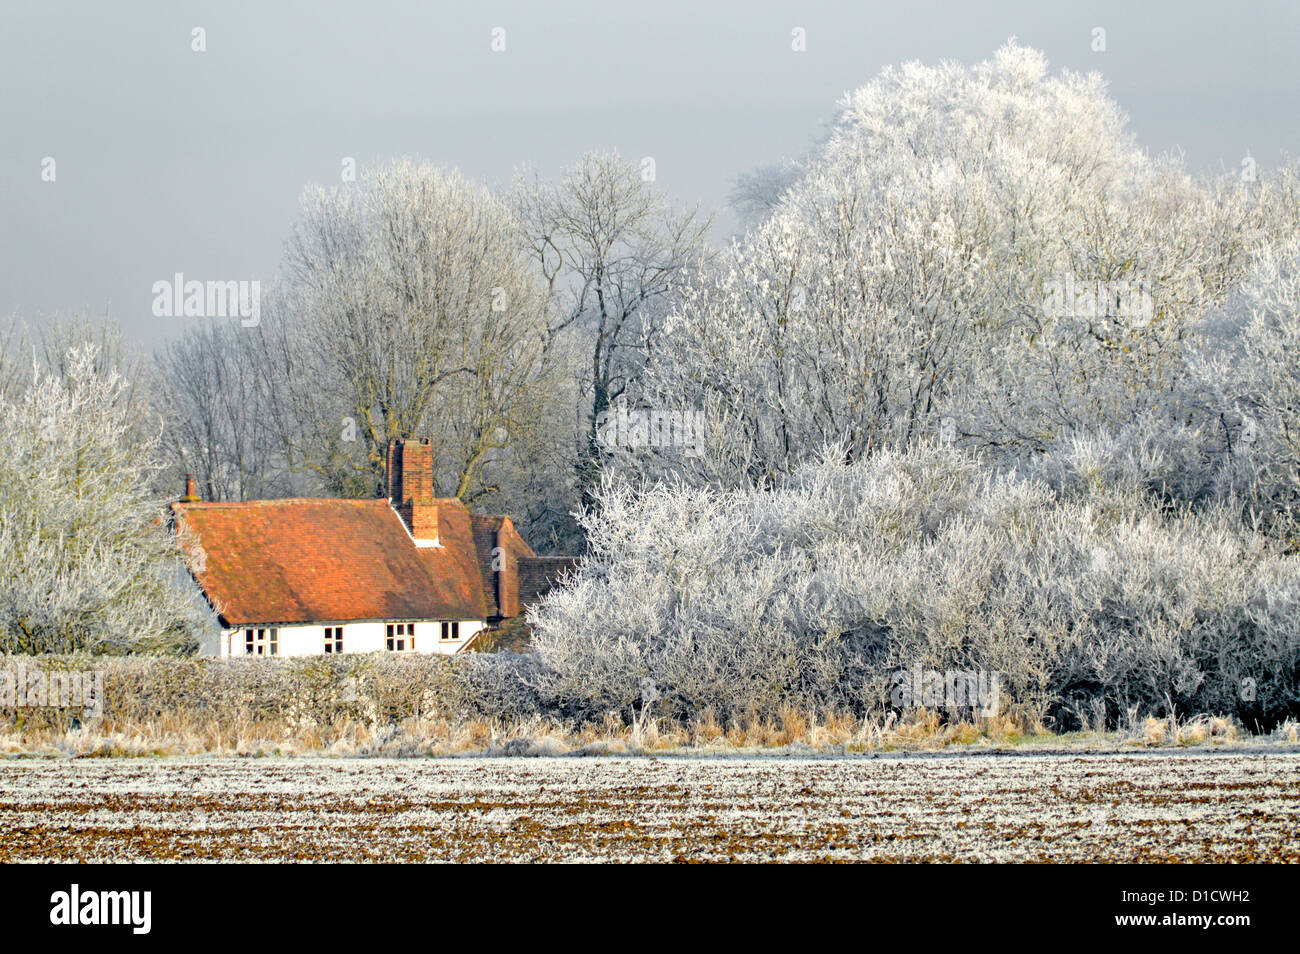 Essex country cottage in winter wonderland of trees covered in hoar frost, no snowfall - Stock Image